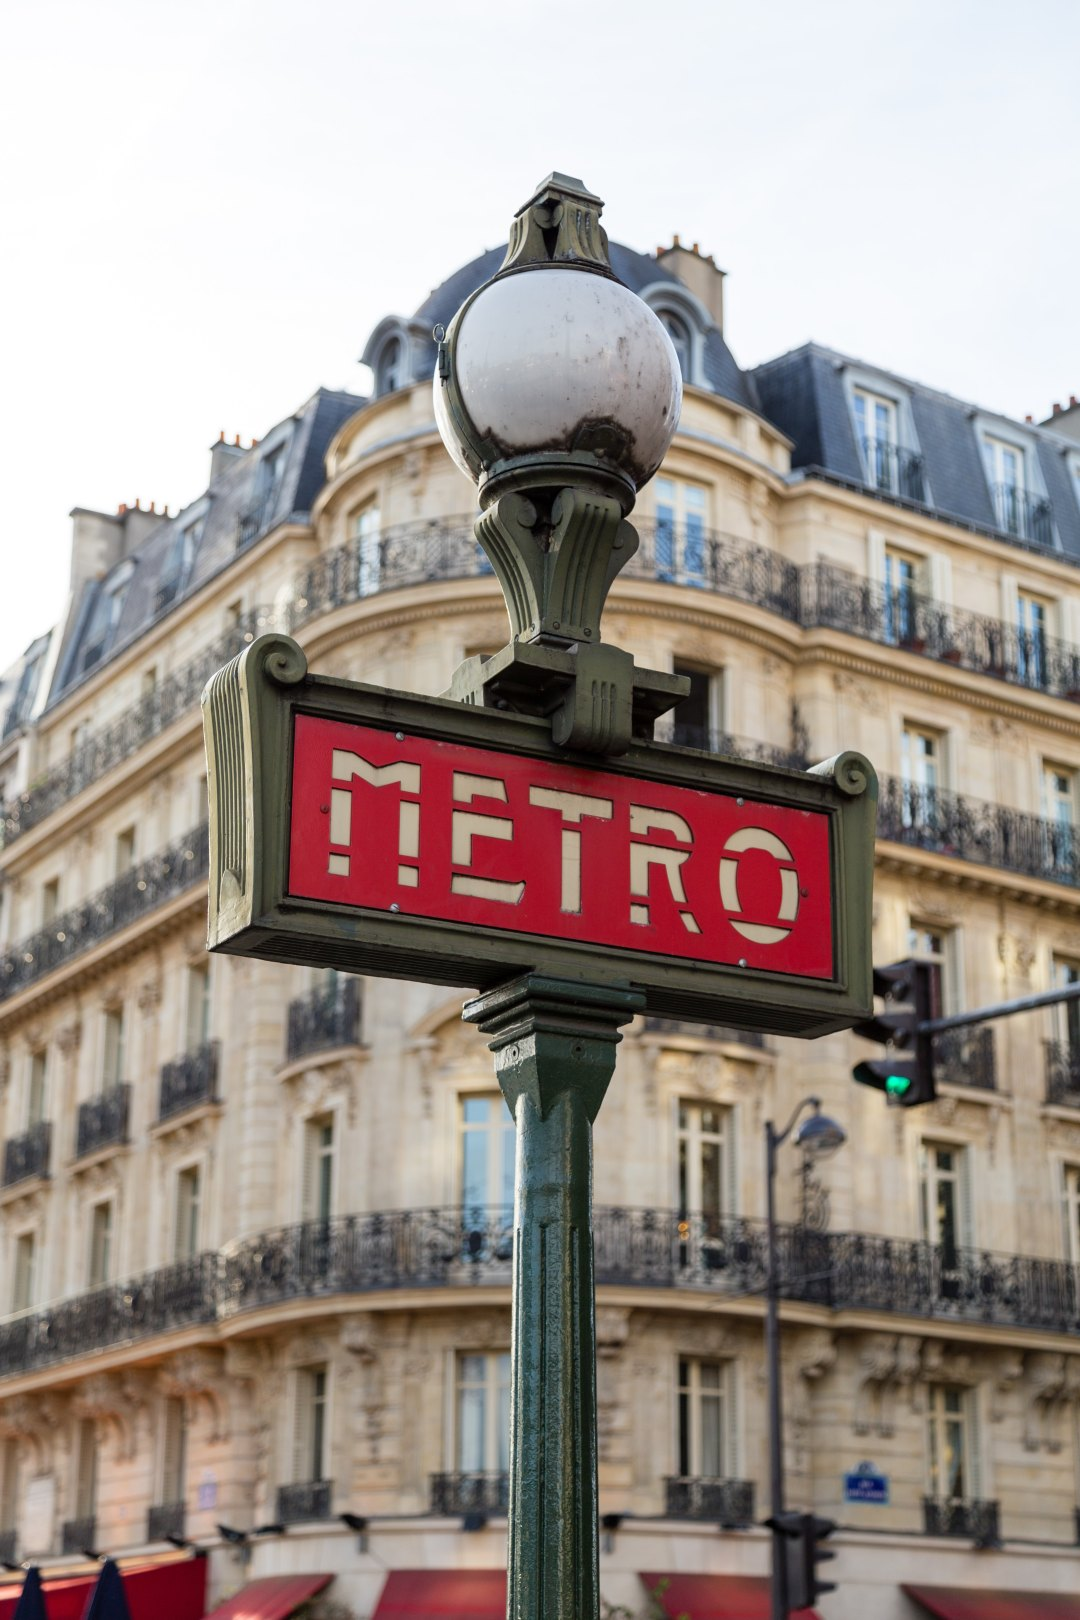 paris metro sign with building and balconies in the background